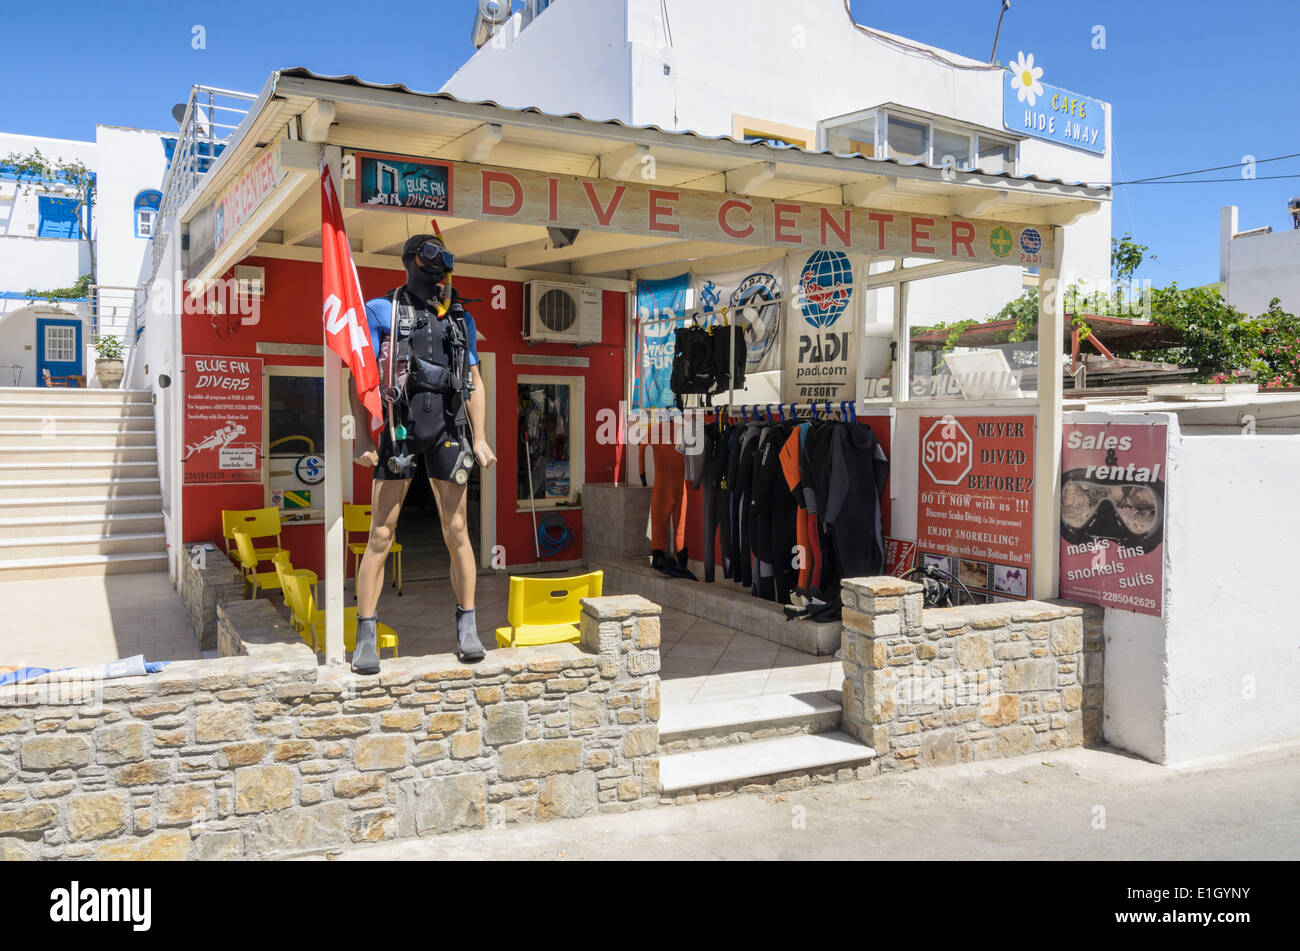 Dive center shop in the beachside resort of agios for The dive shop